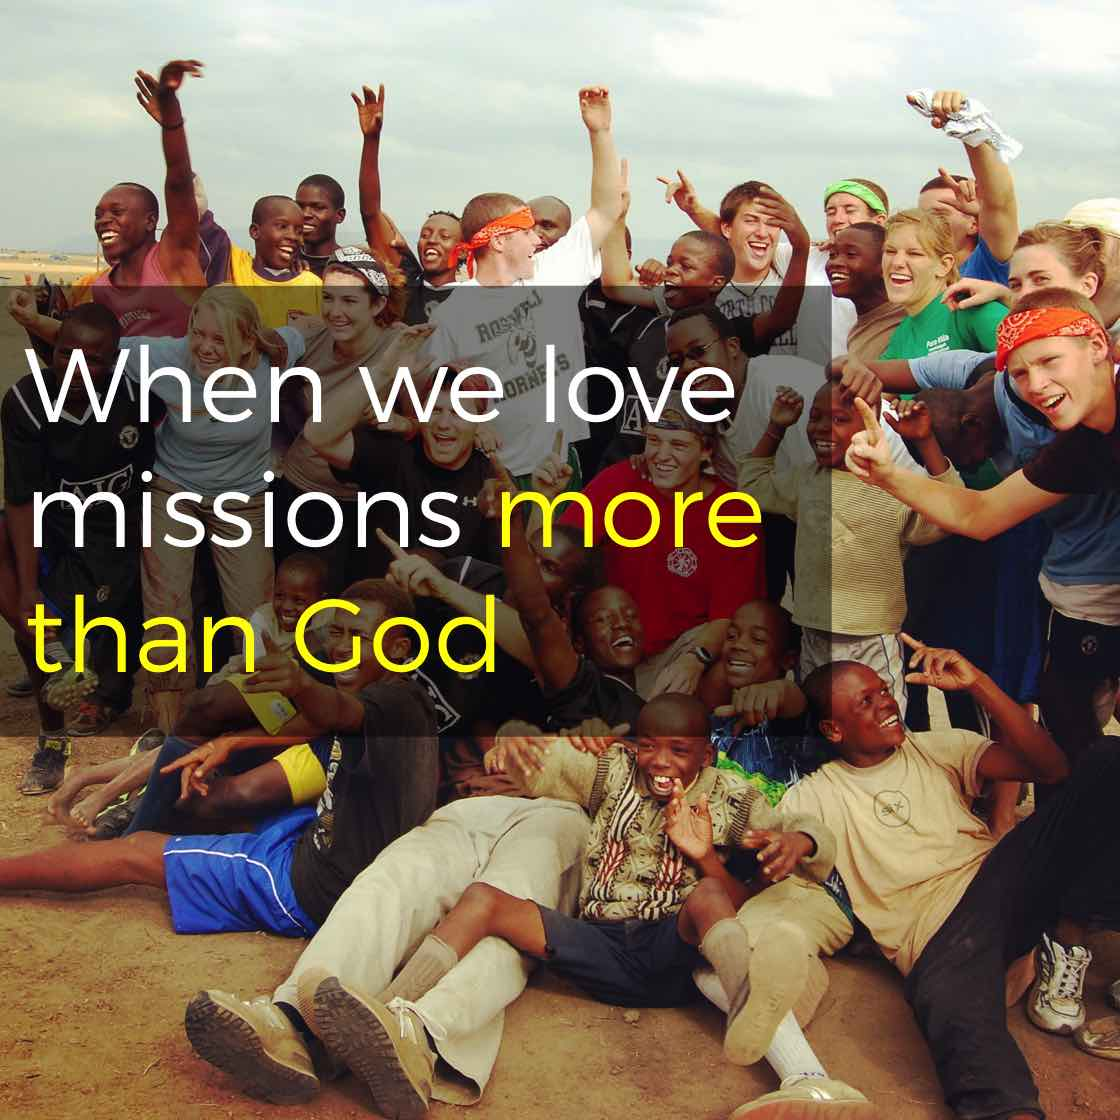 Episode 29: When we love missions more than God